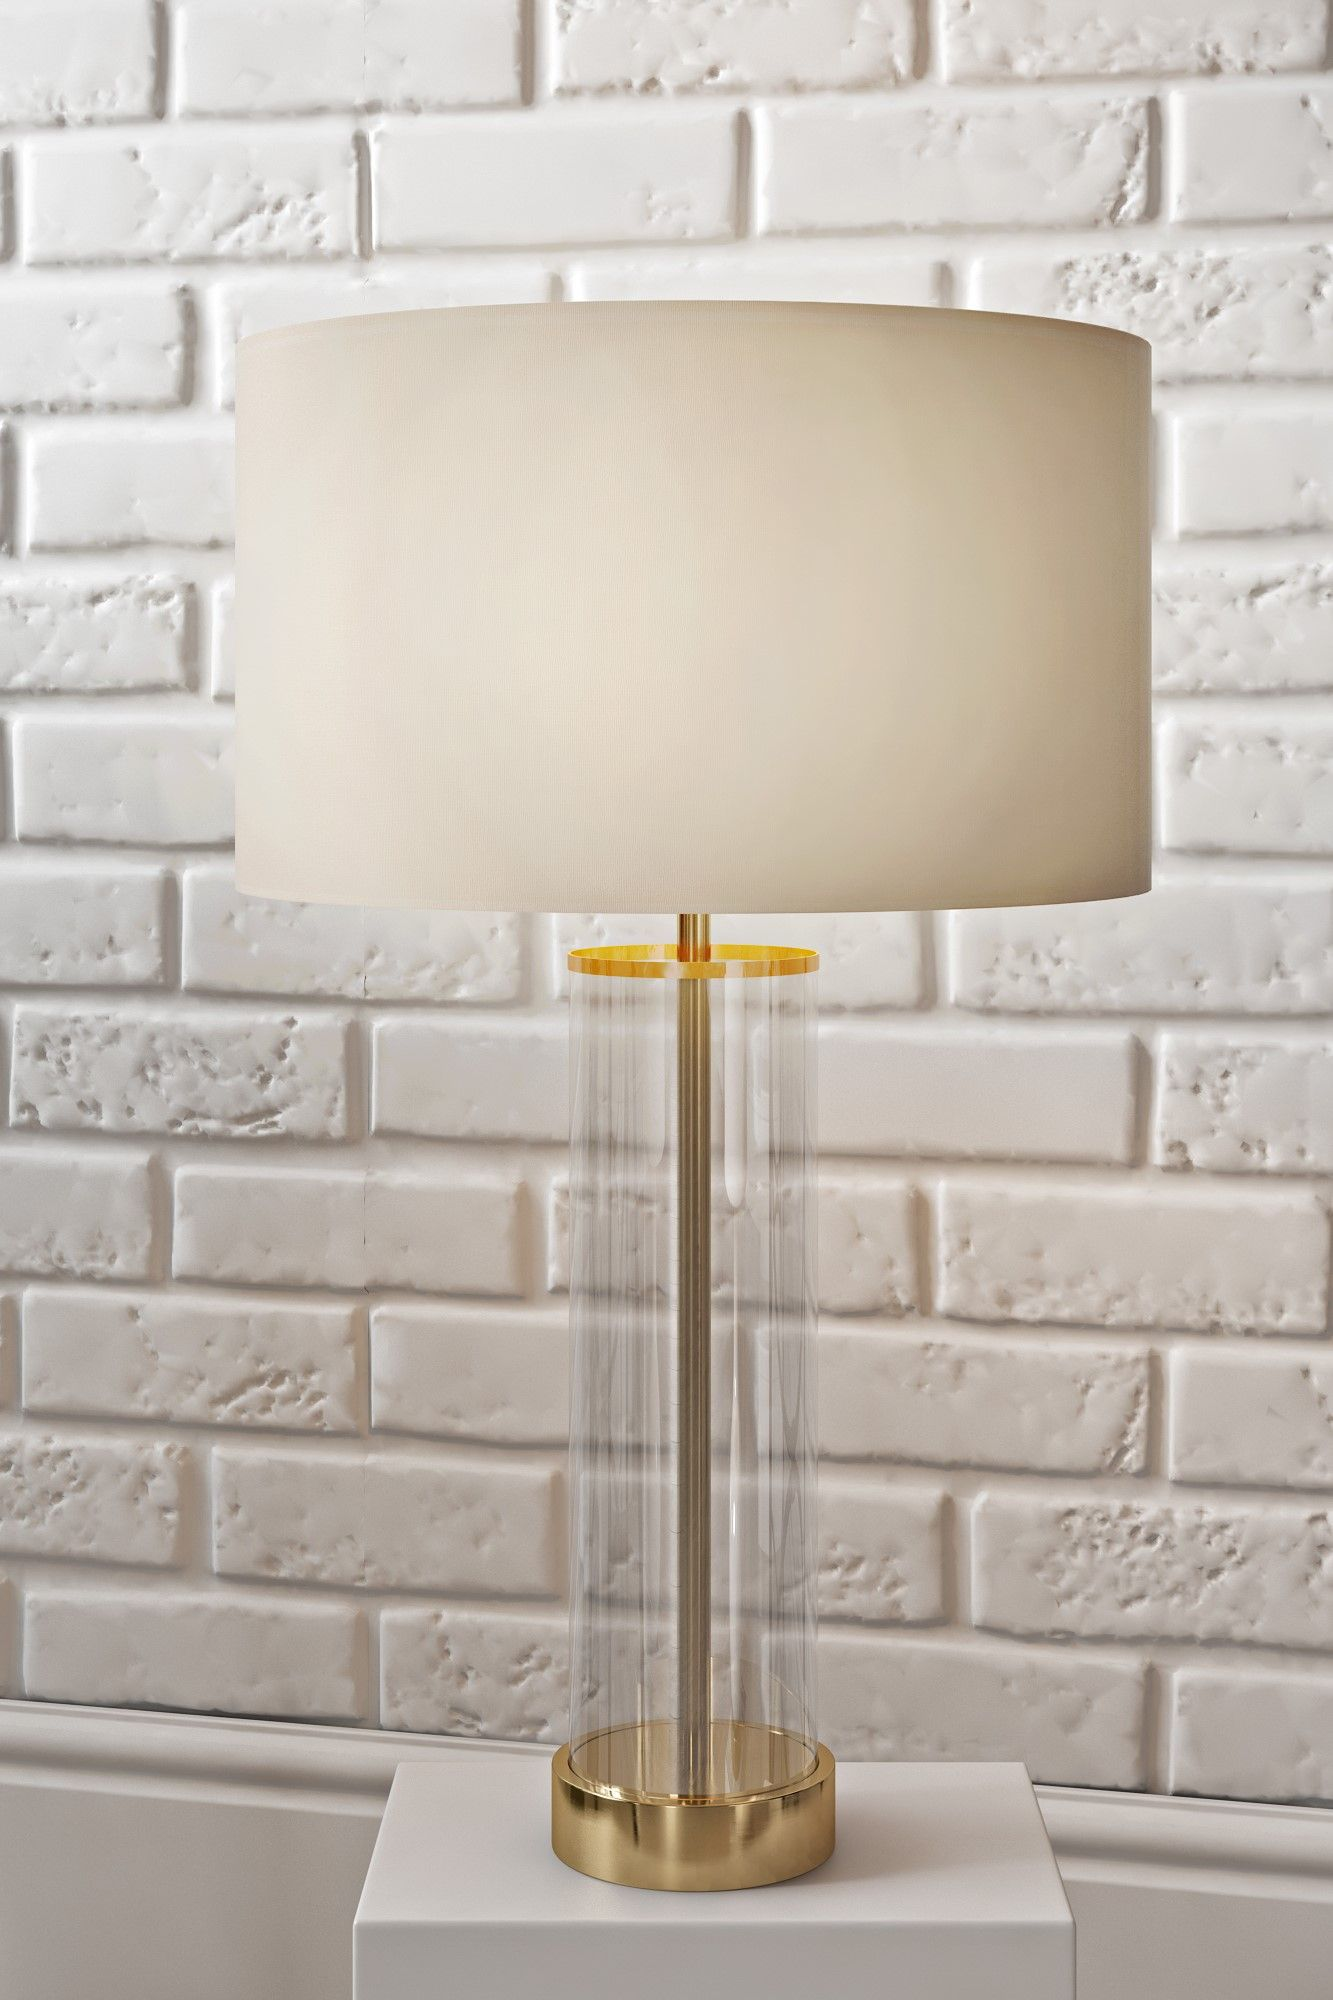 Nachttischleuchte Touch Dimmer Lessina 57cm Table Lamp Trend Metallics Table Lamp Lighting